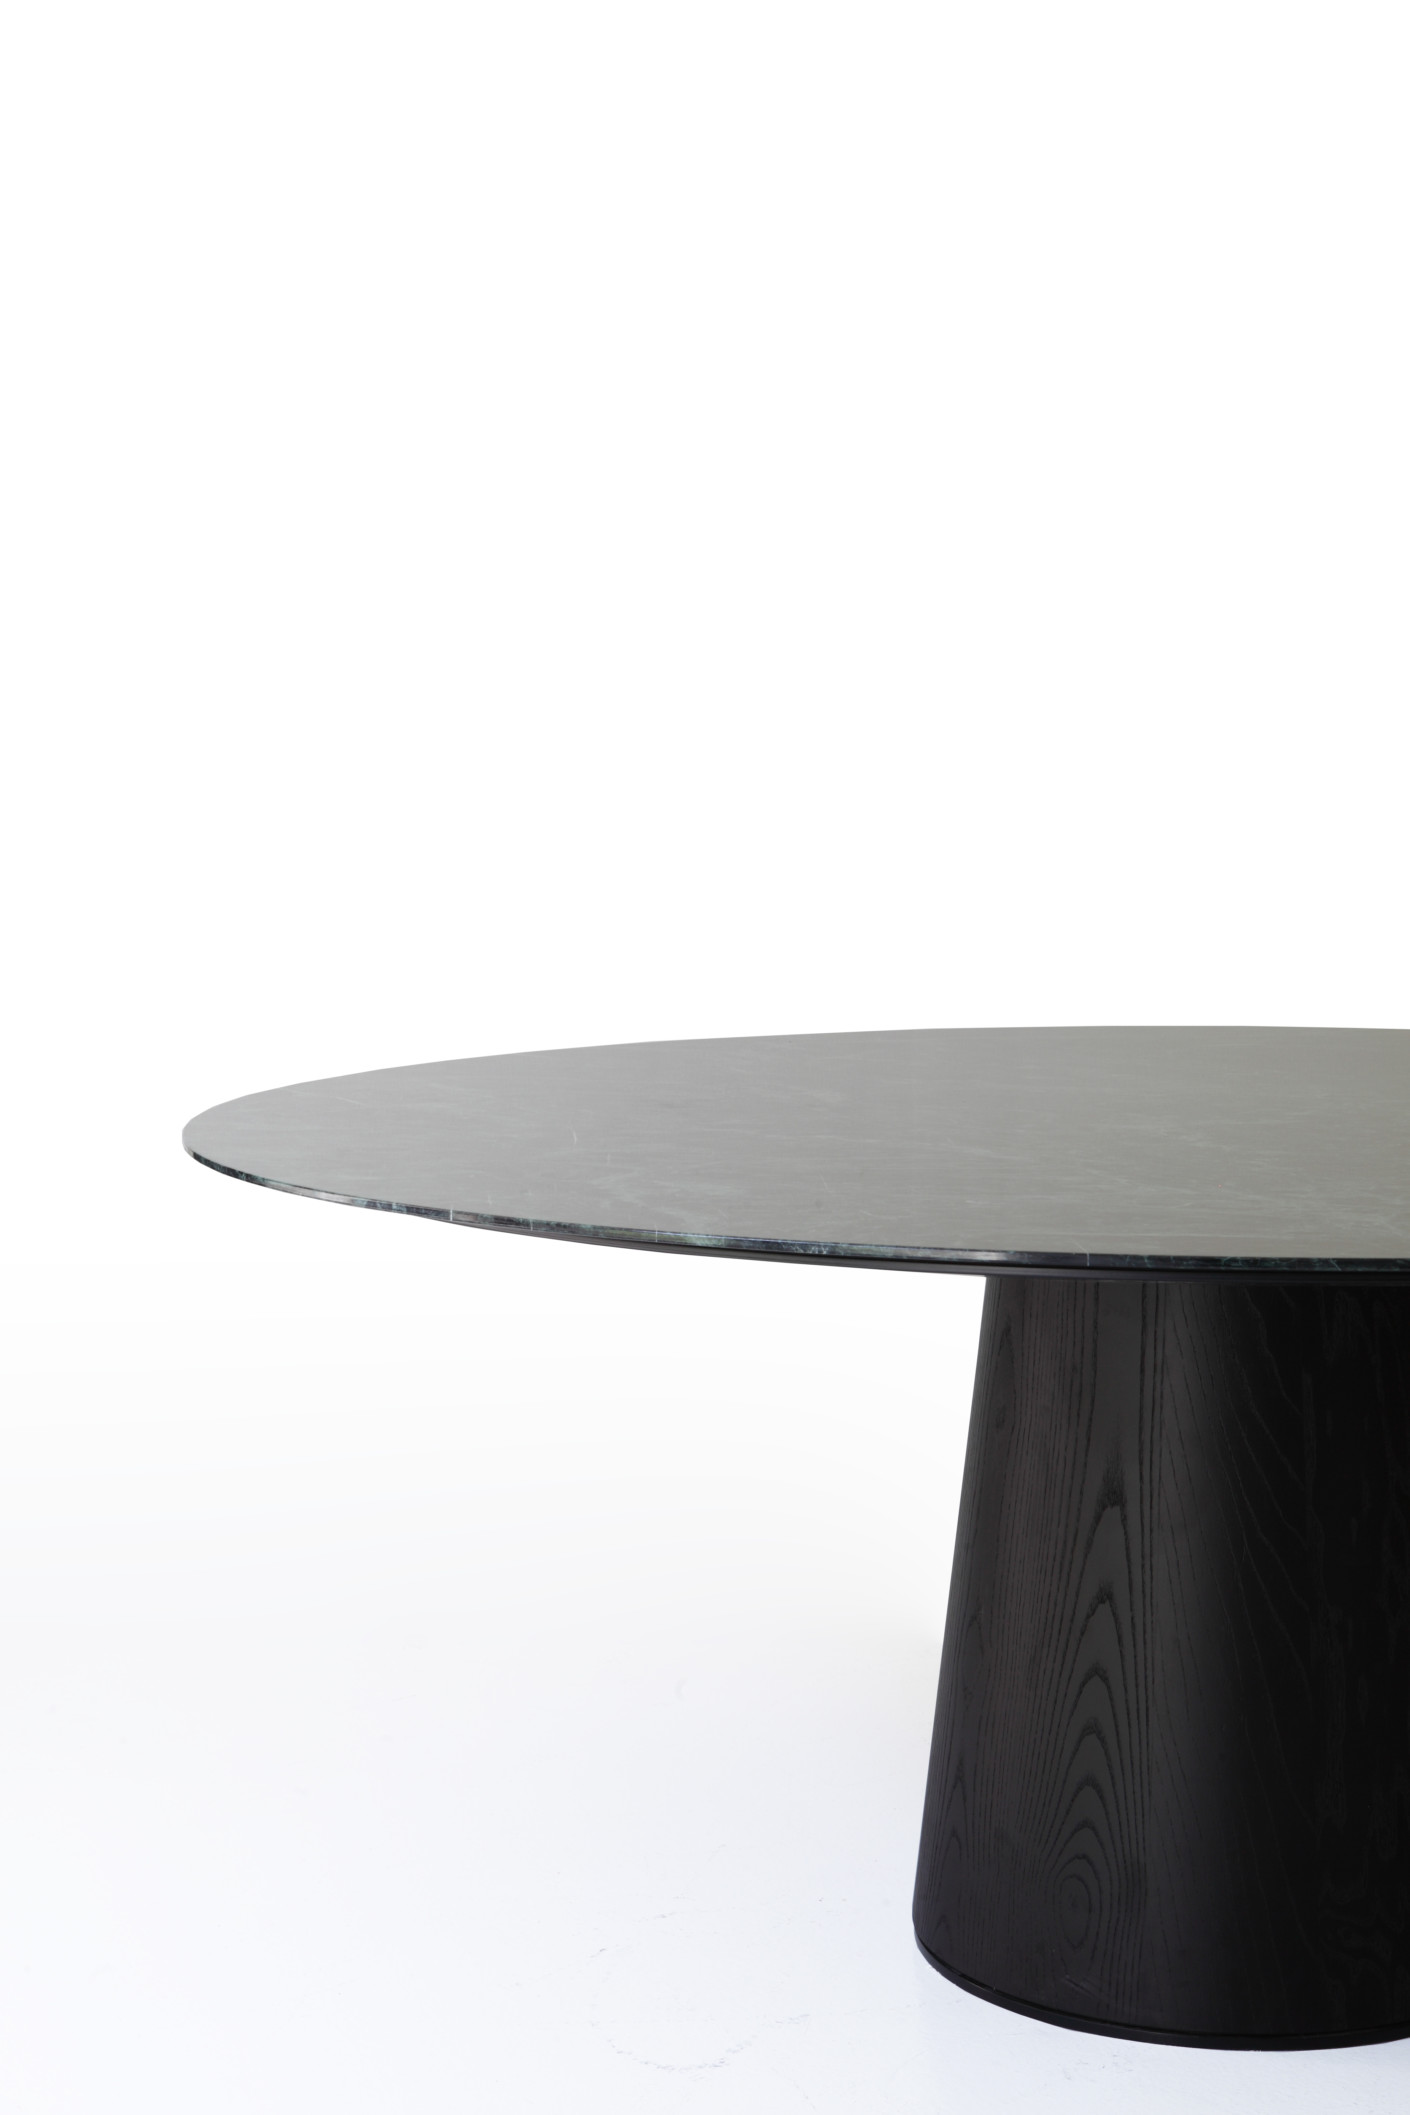 Materic Table by Piero Lissoni for Porro